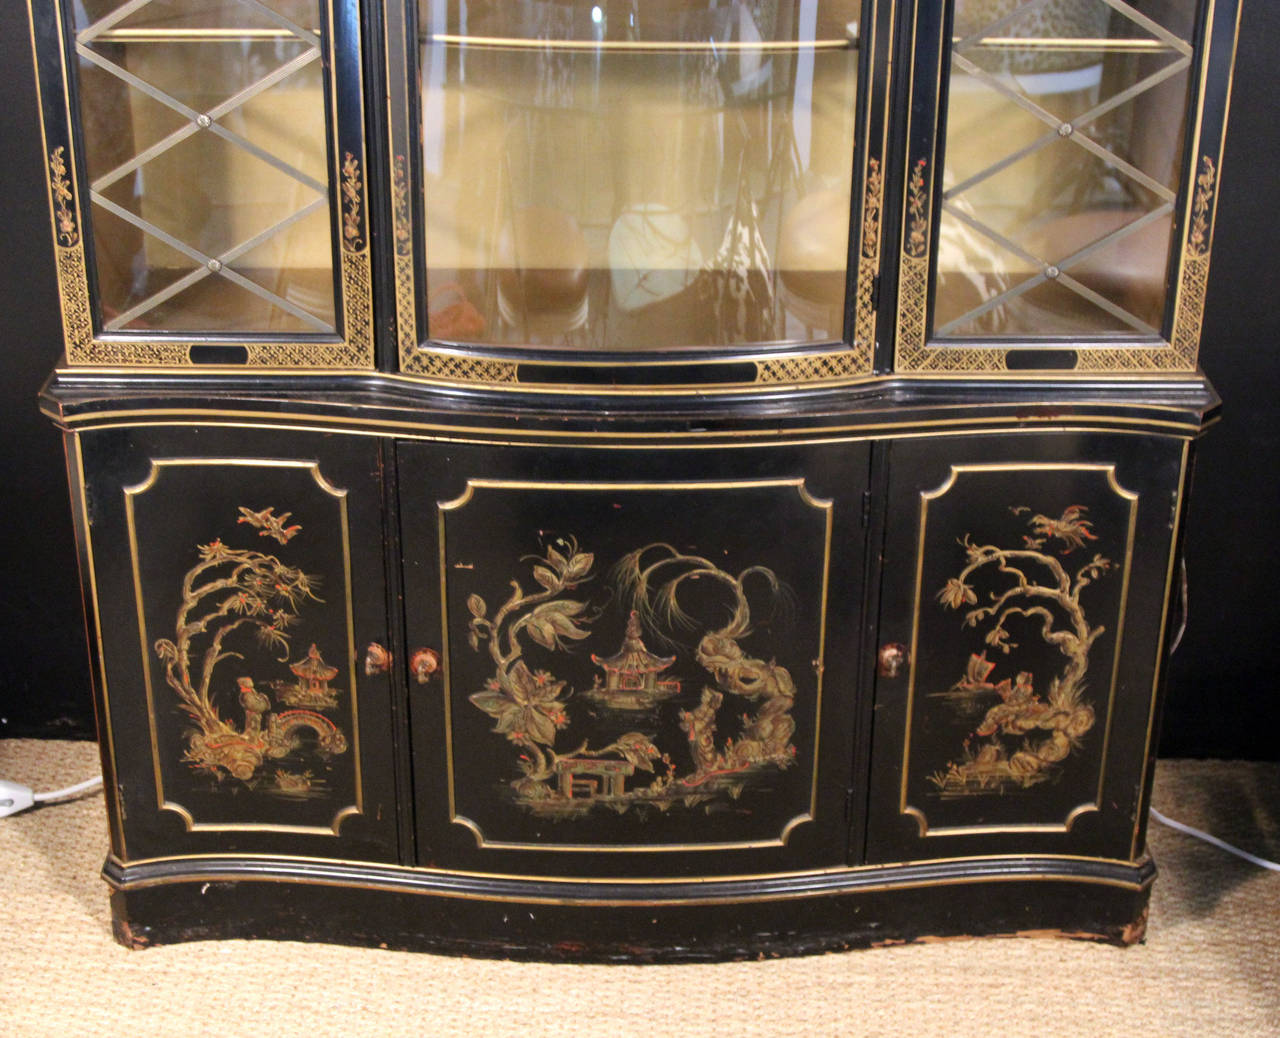 Chinoiserie breakfront china cabinet at 1stdibs for Chinese furniture norwalk ct